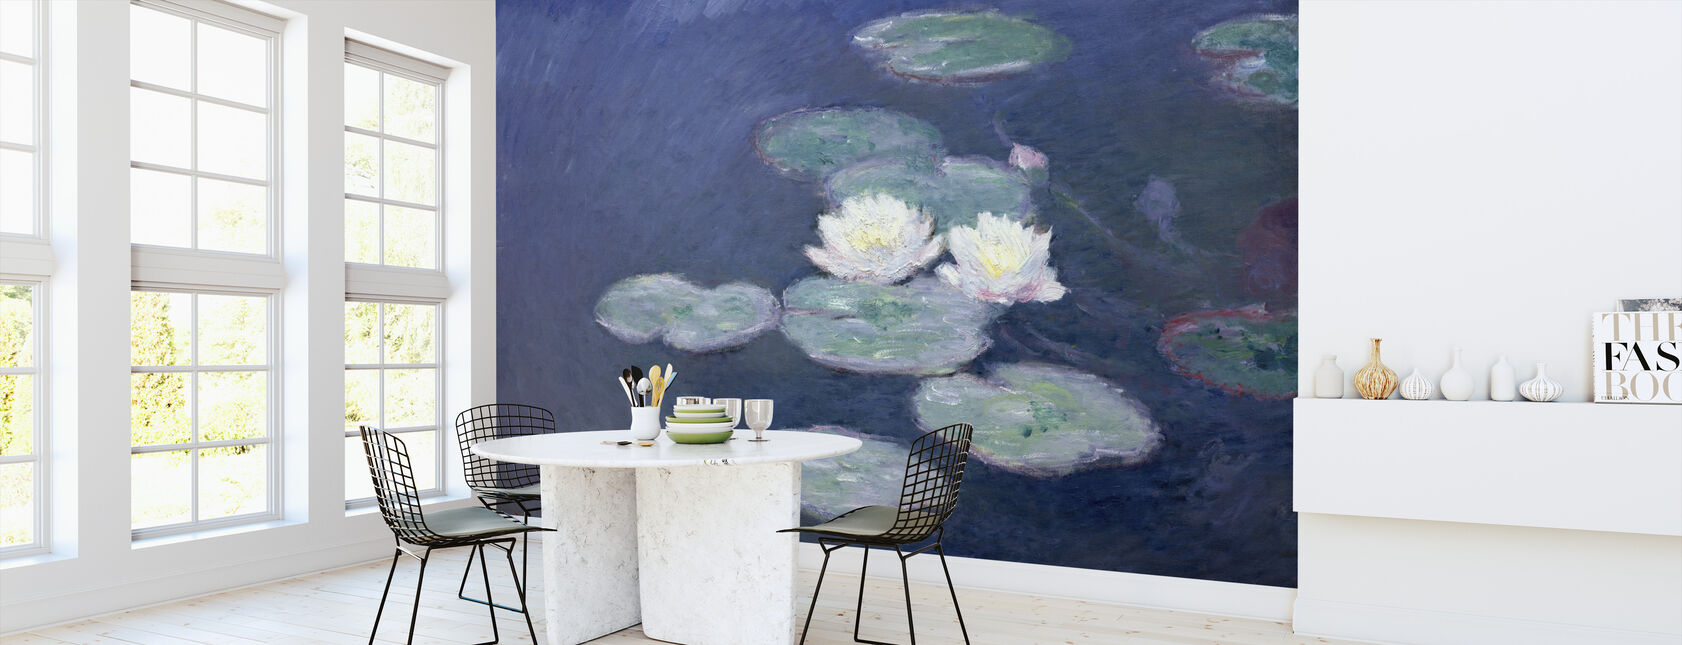 Waterlilies - Claude Monet - Wallpaper - Kitchen